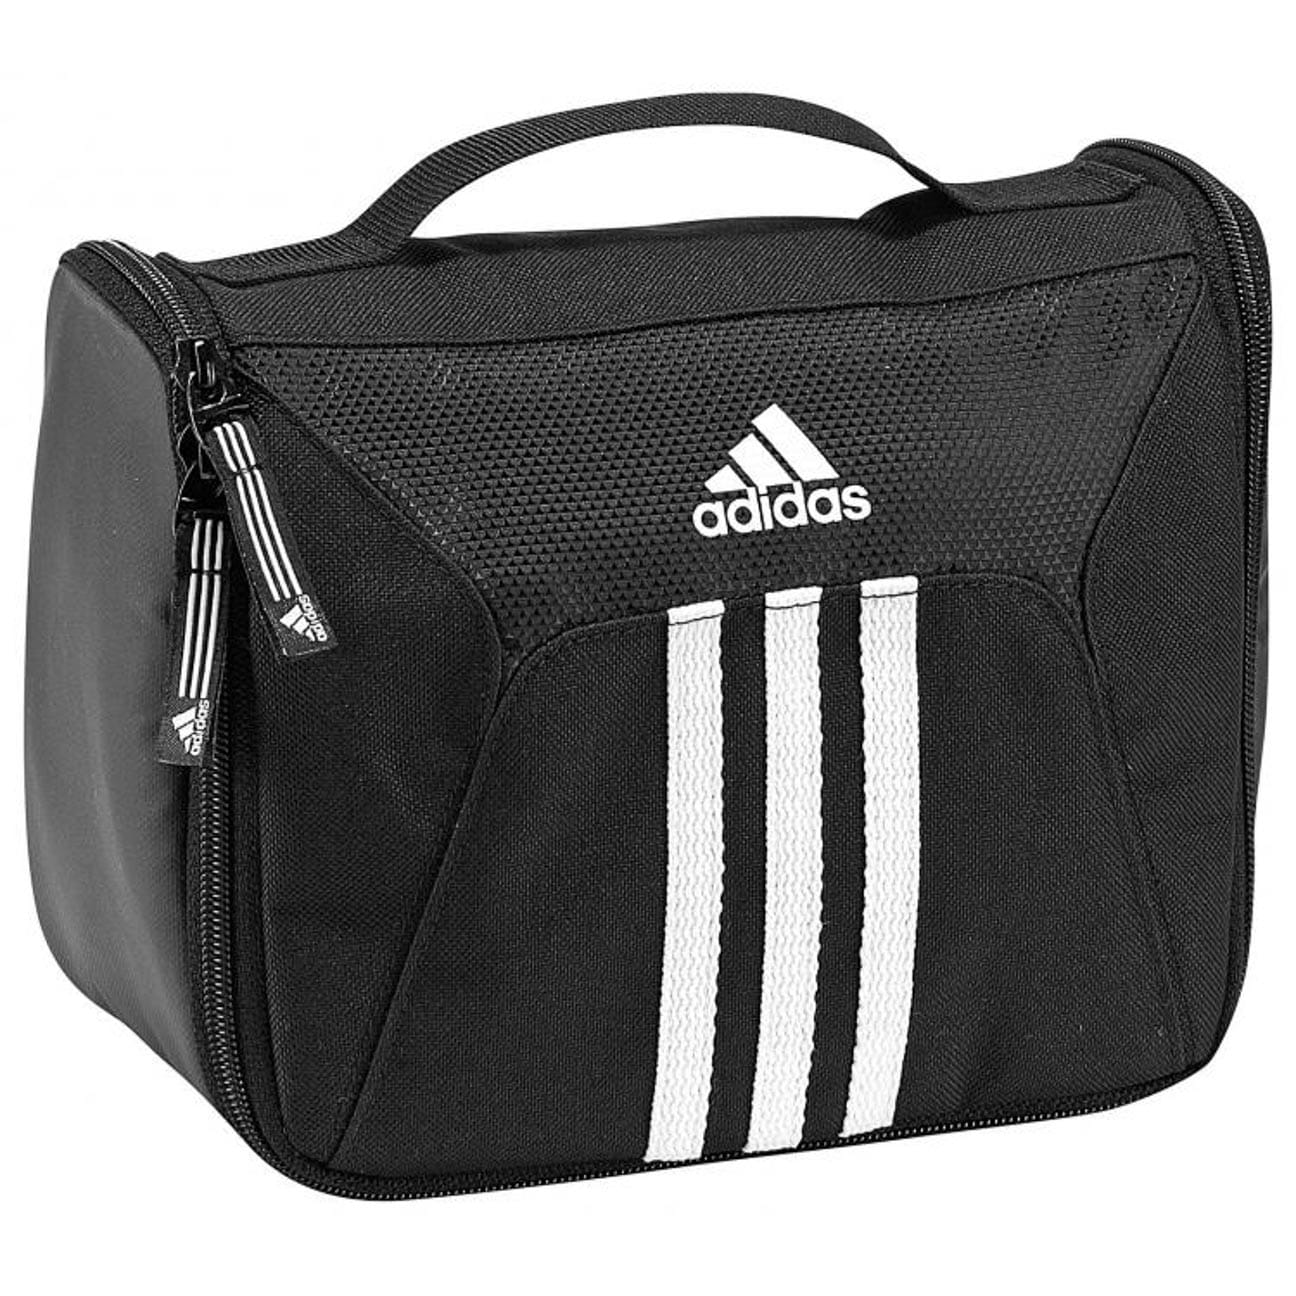 31d6e0694d6e 3S Toiletry Bag by adidas - black 1